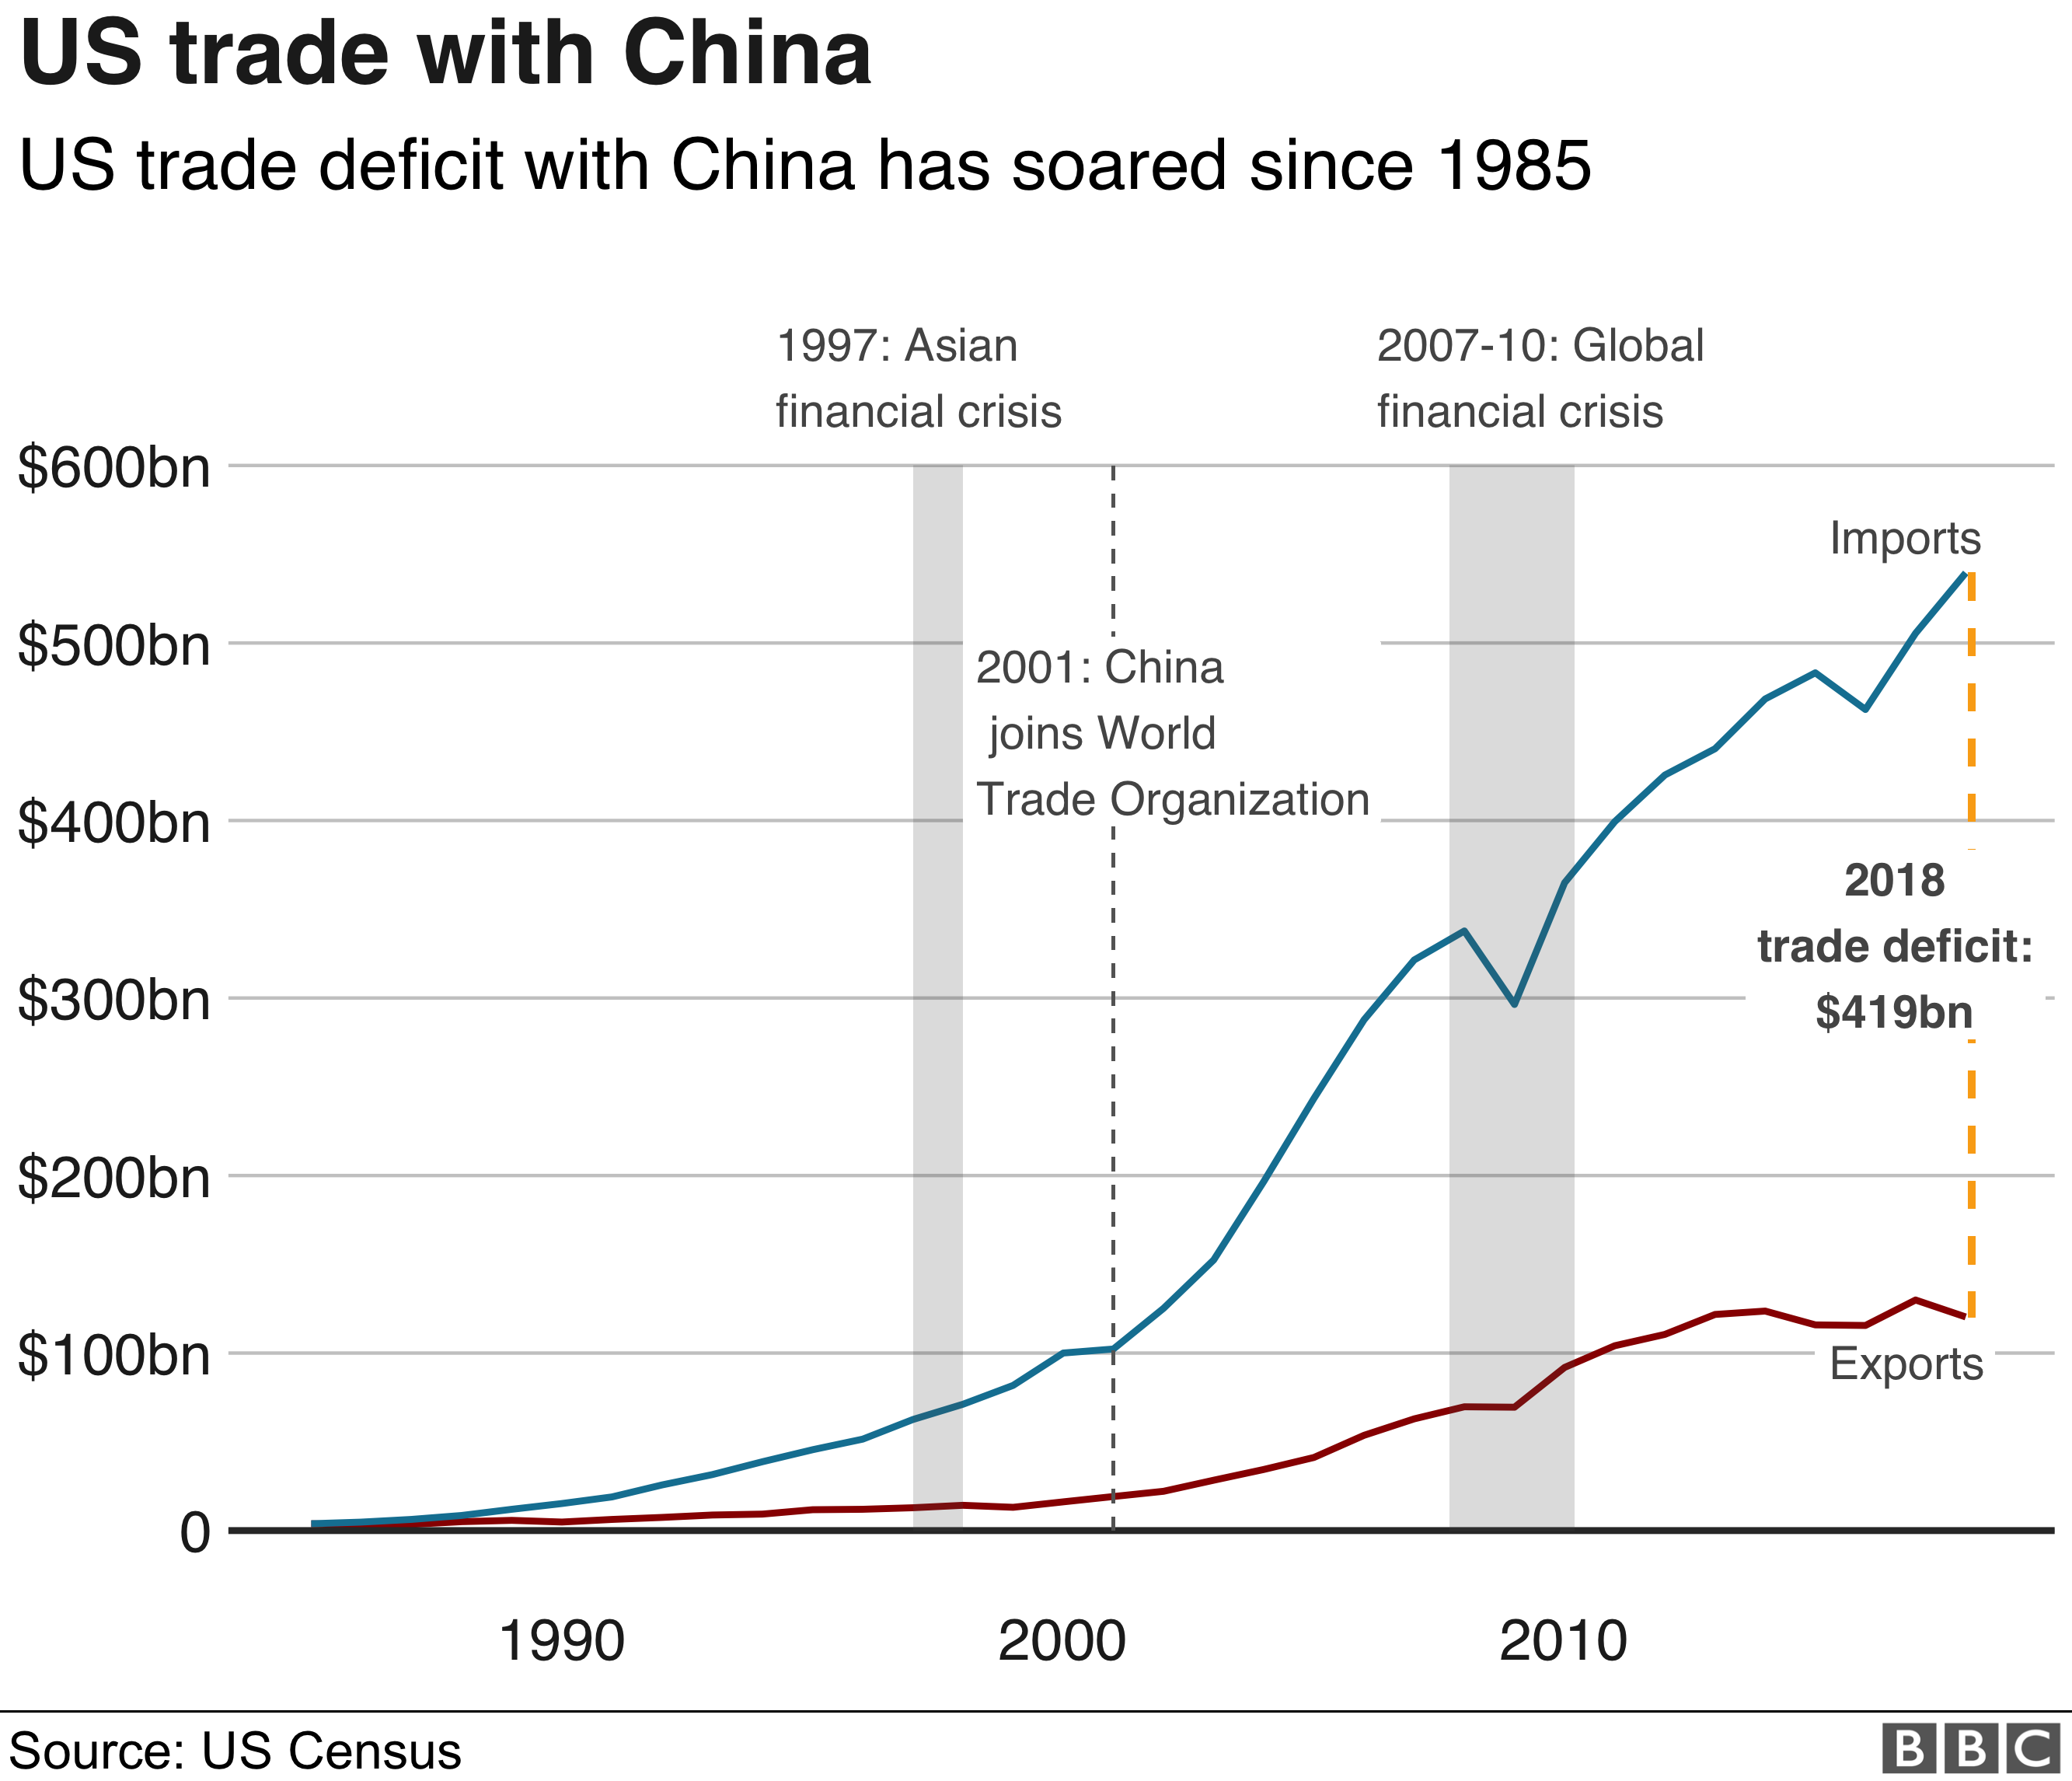 US trade deficit with China graph